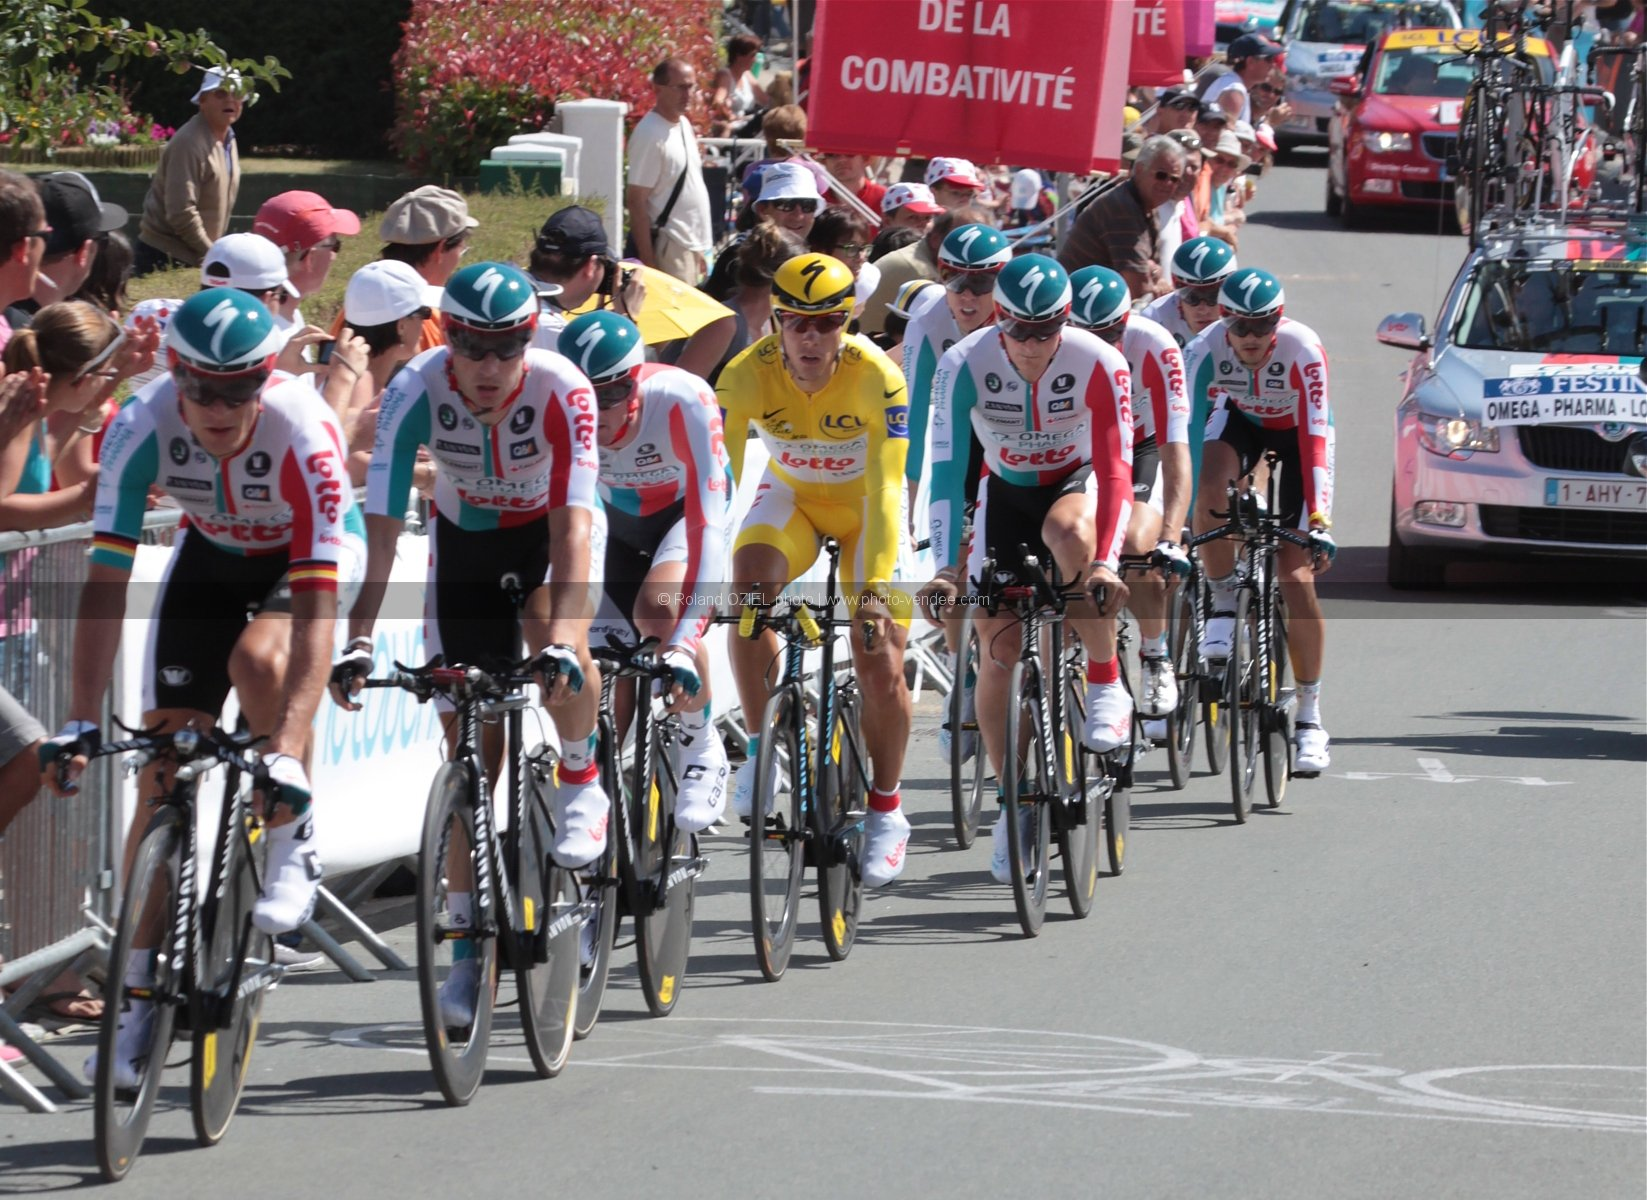 Photo equipe Omega Pharma Tour de France 2011